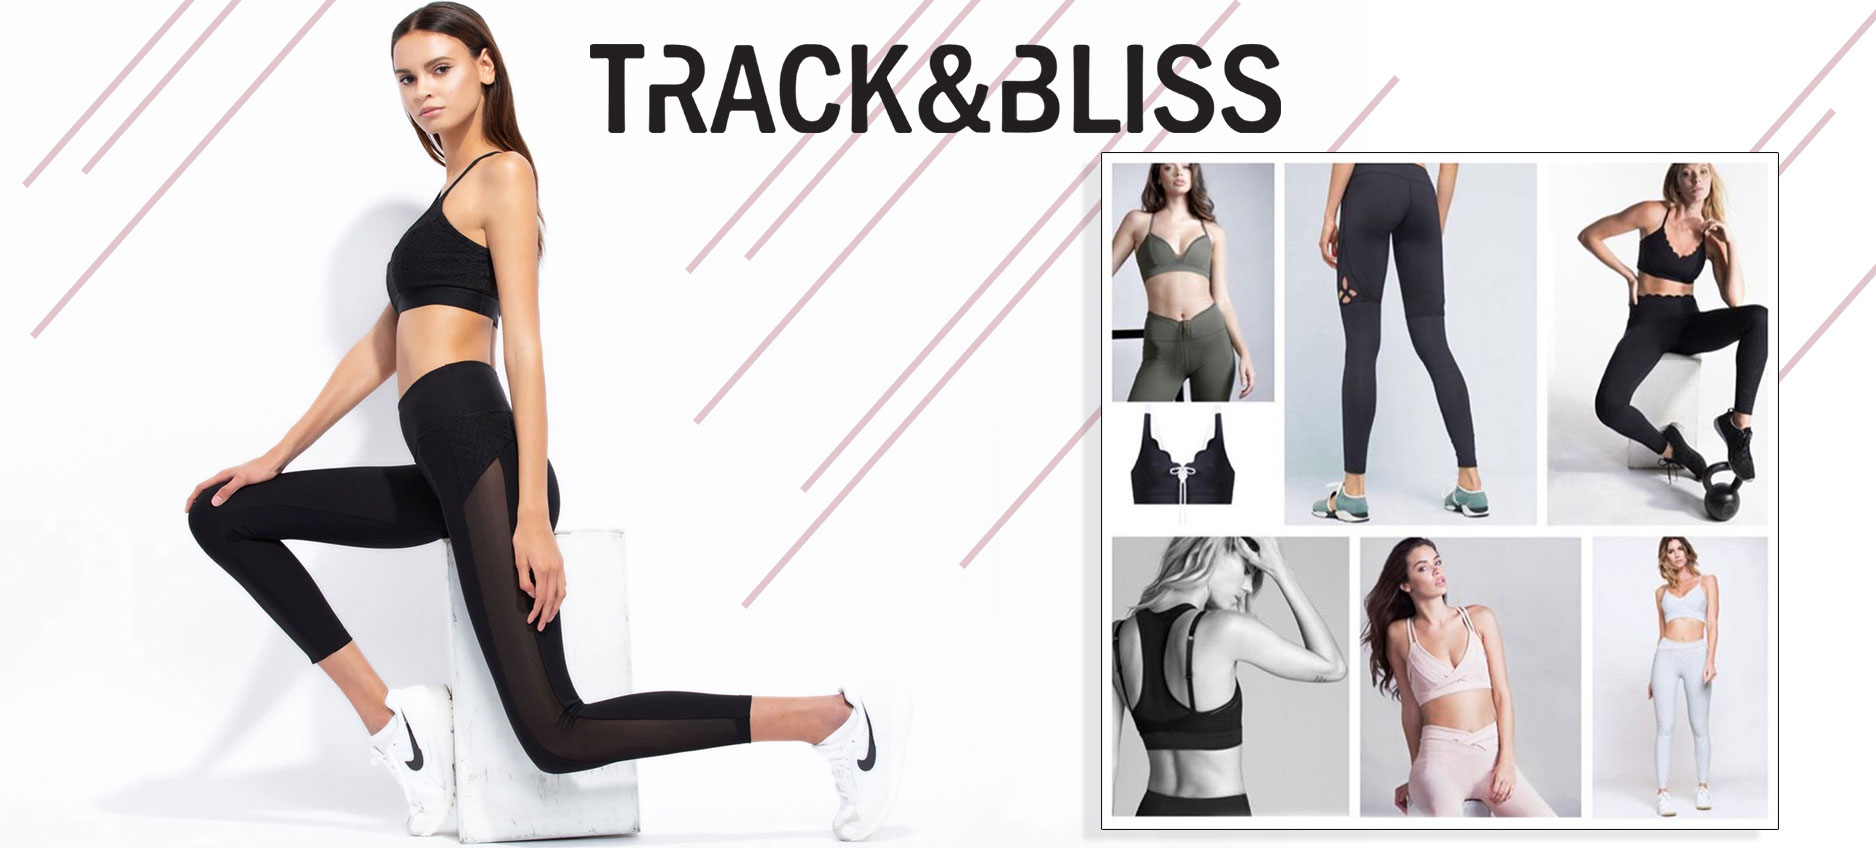 Track & Bliss